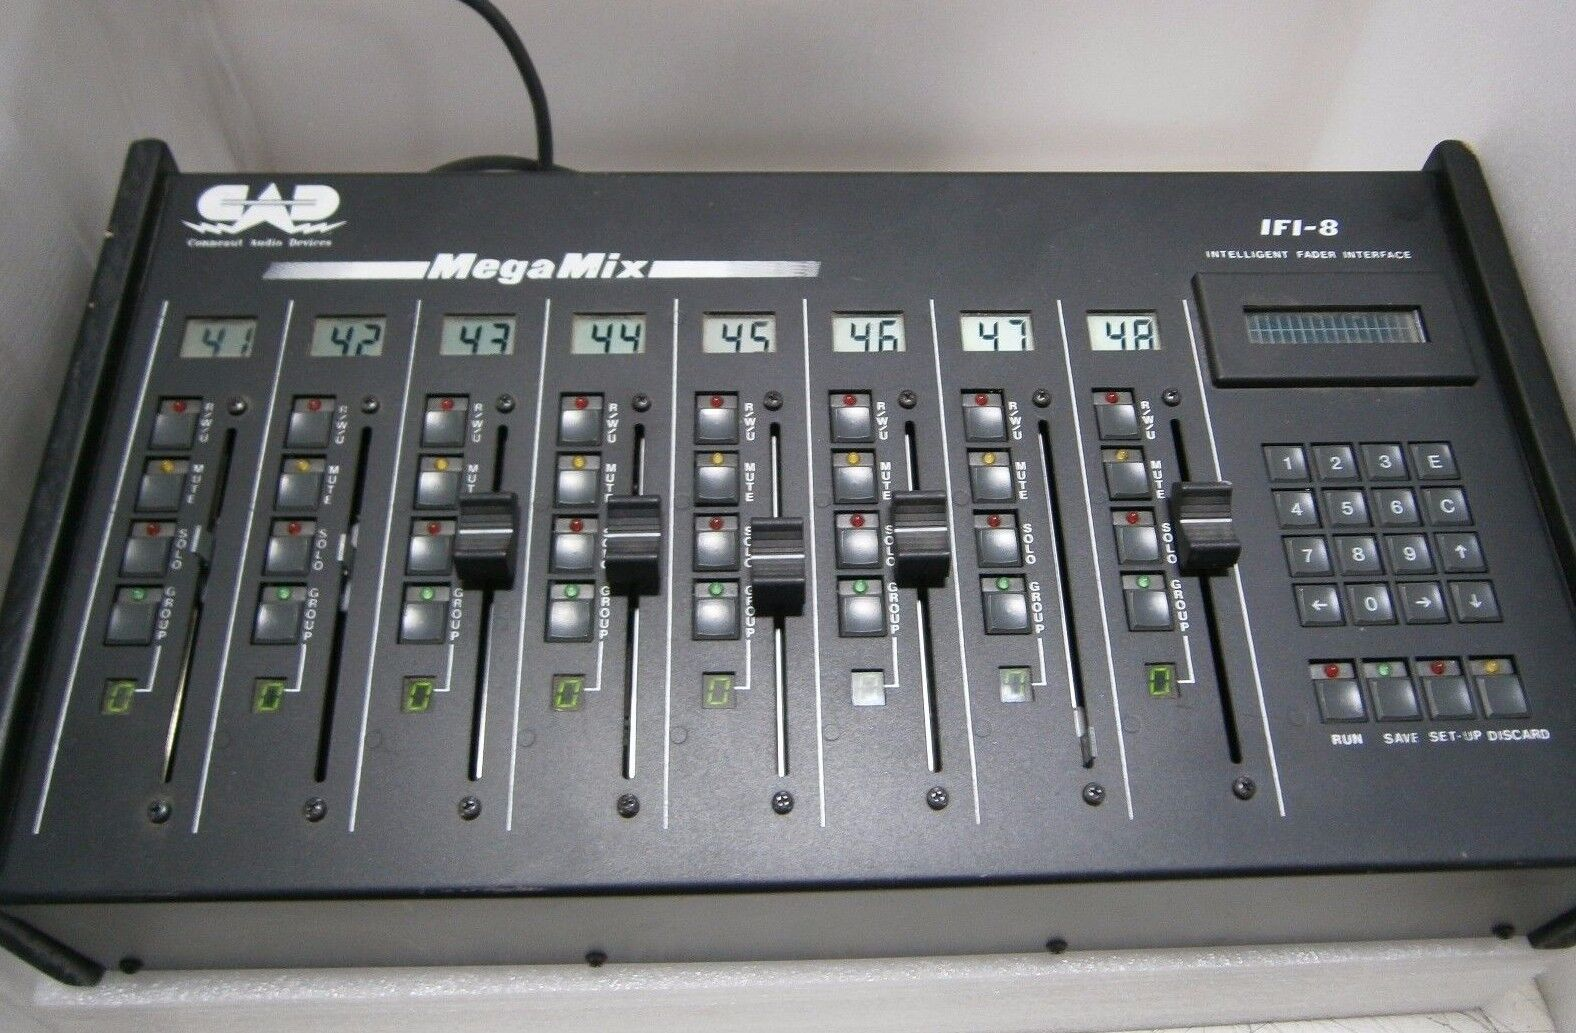 CAD MEGAMIX IFI-8 INTELLIGENT FADER INTERFACE USED